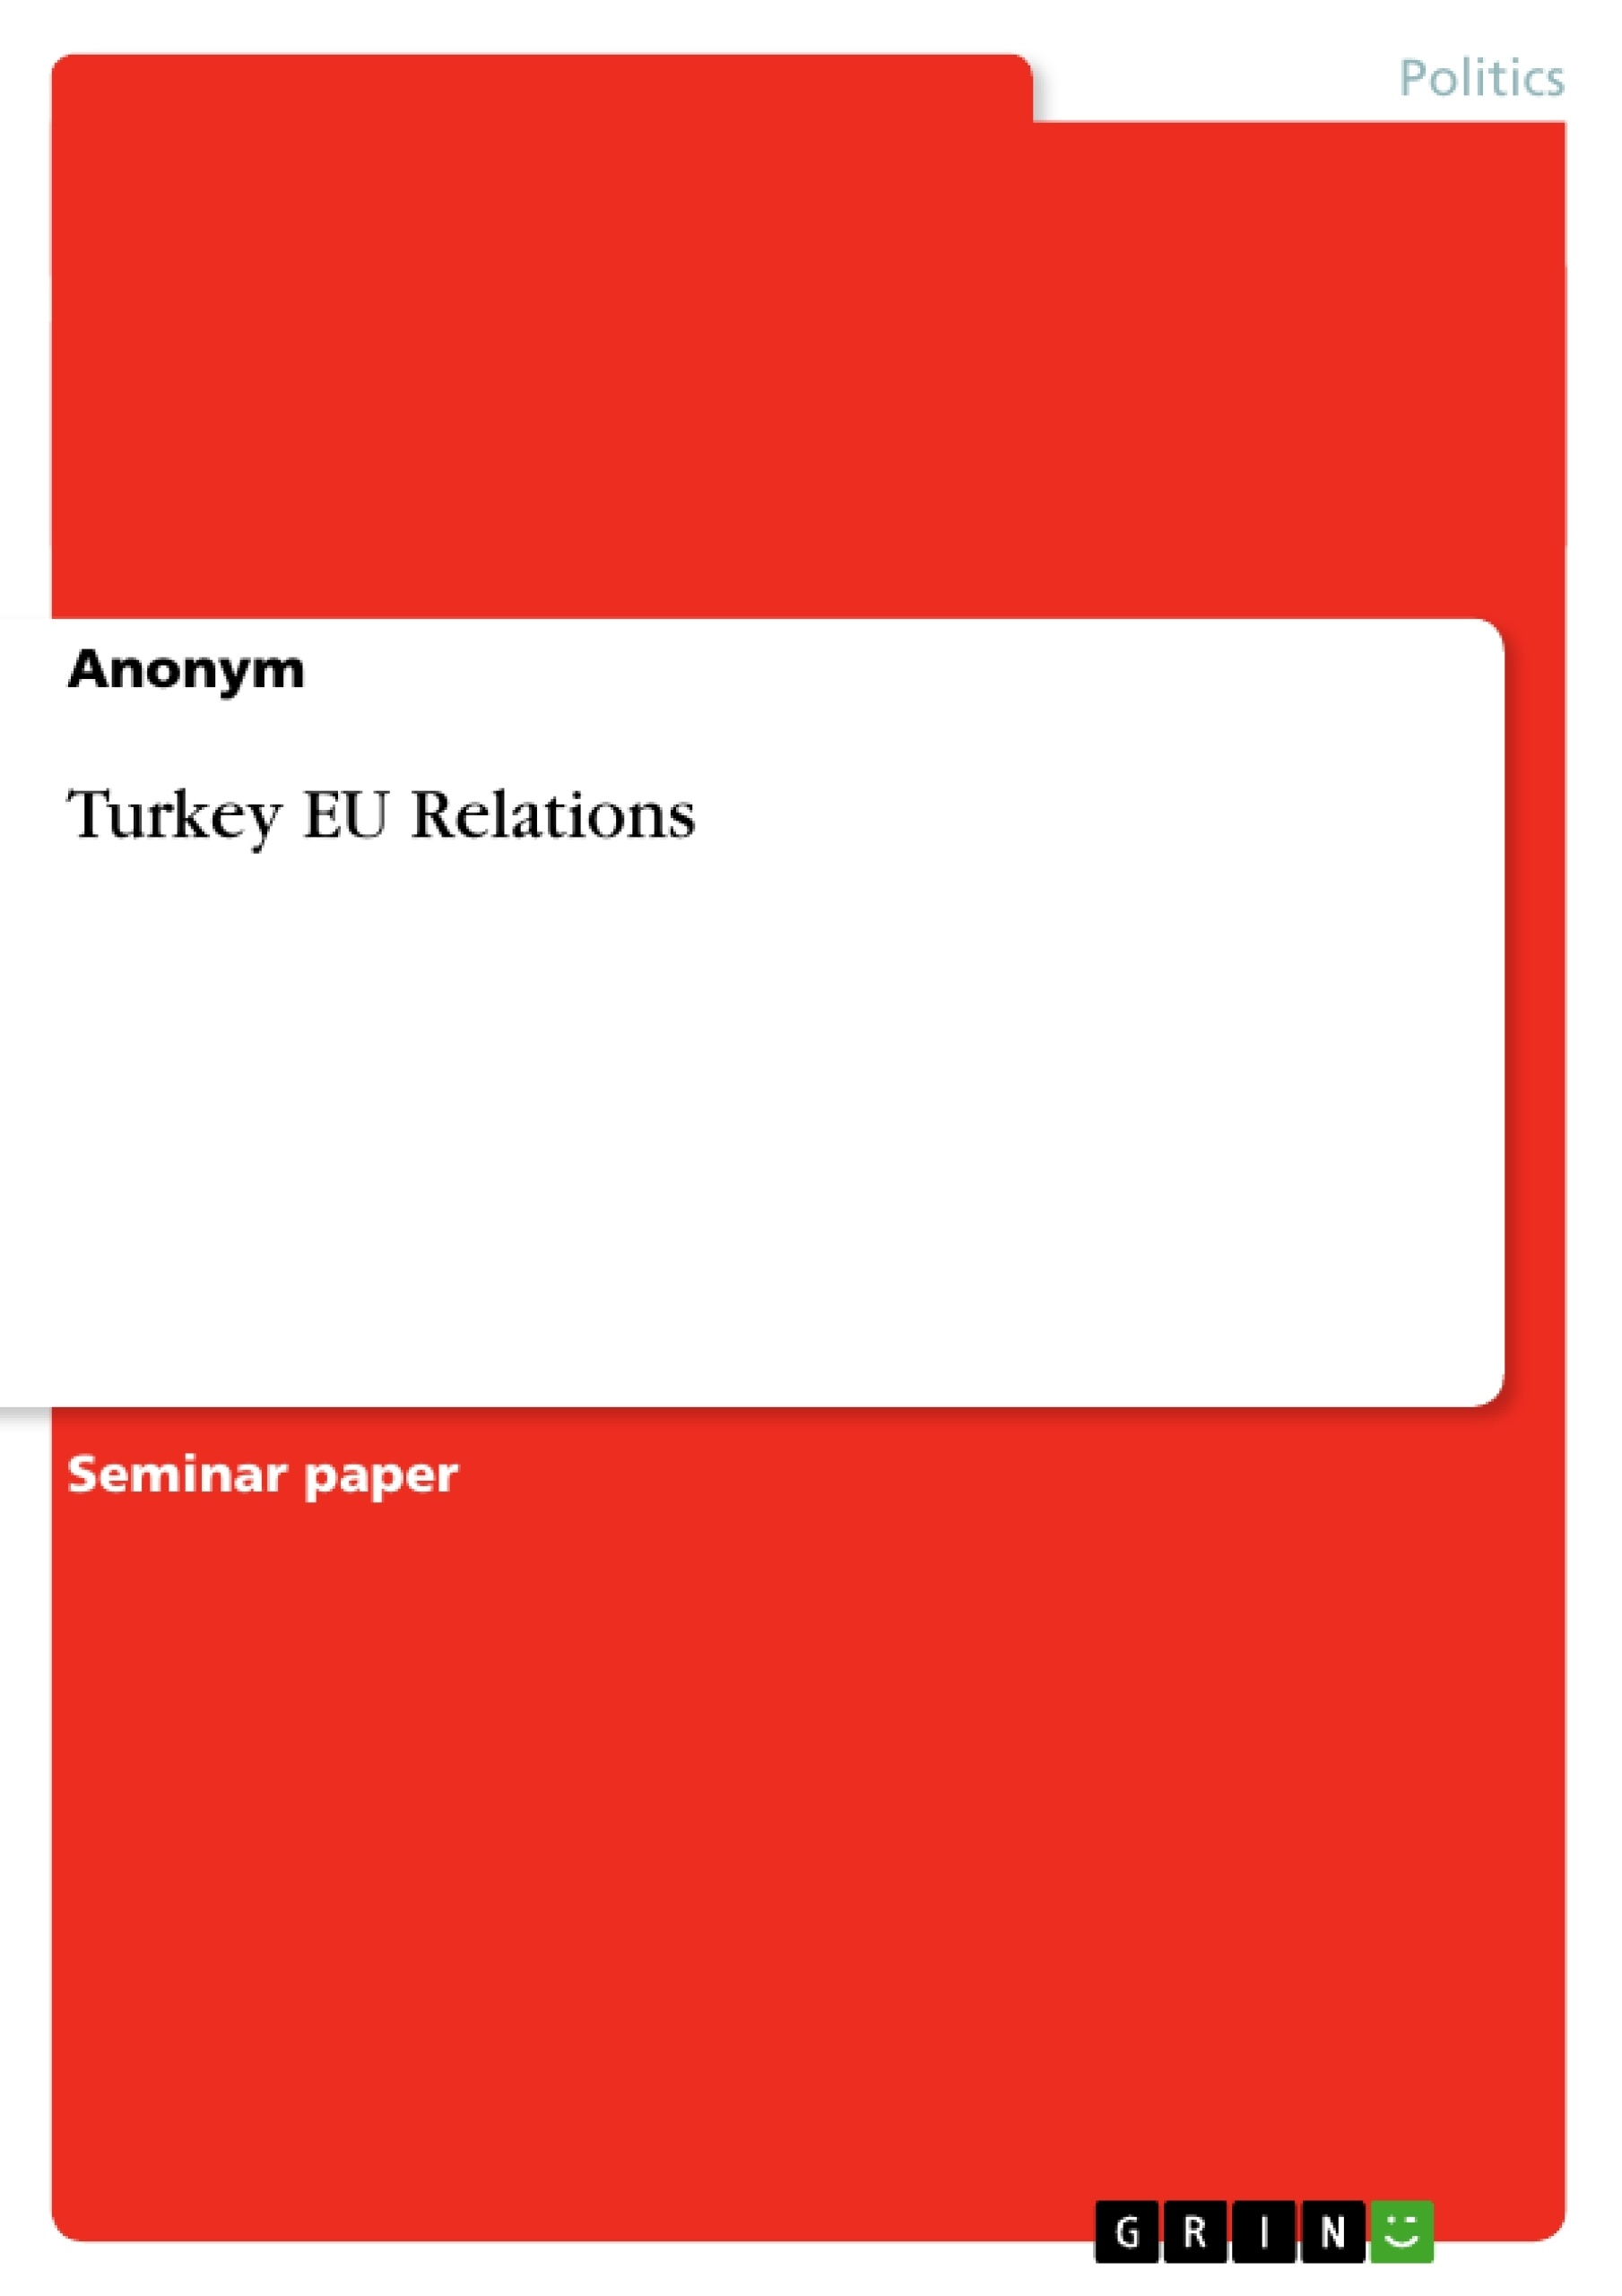 turkey eu thesis Turkey, migration and the eu: potentials, challenges and opportunities edited by seçil paçacı elitok and thomas straubhaar hamburg university press.